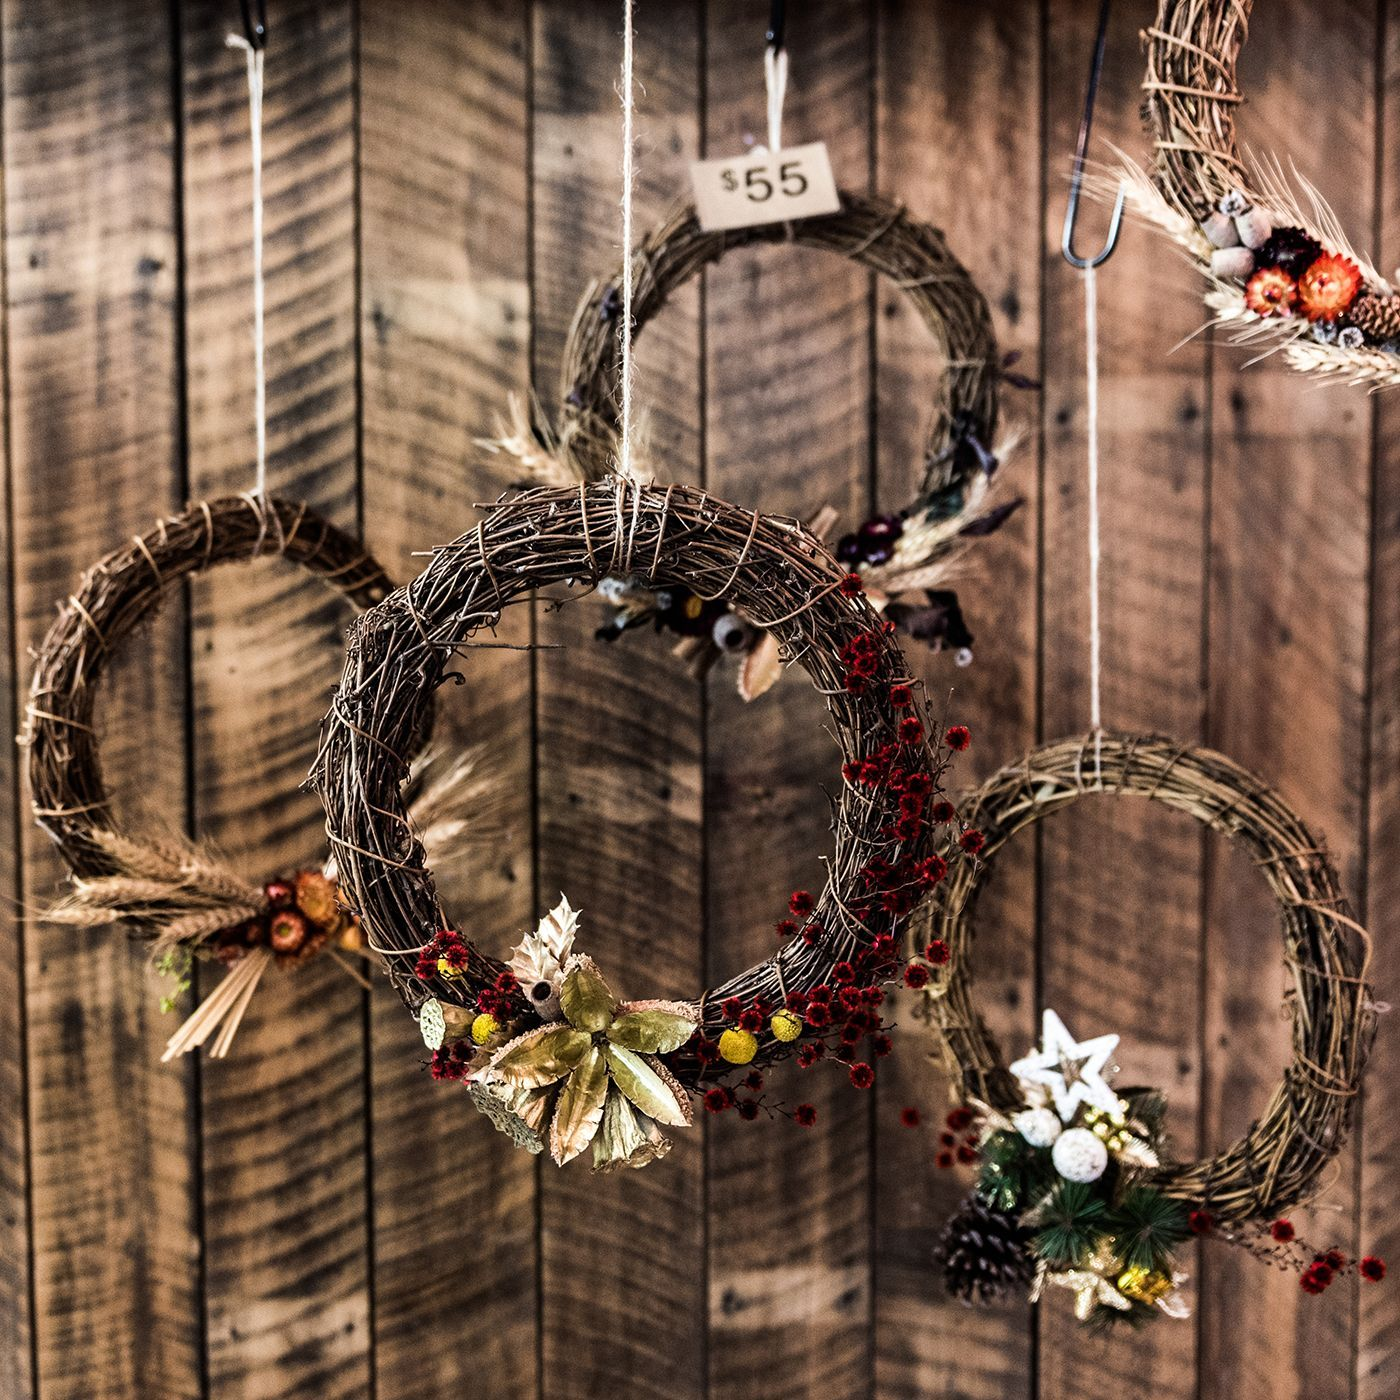 Dried wreaths have been so popular this year, and we still ...